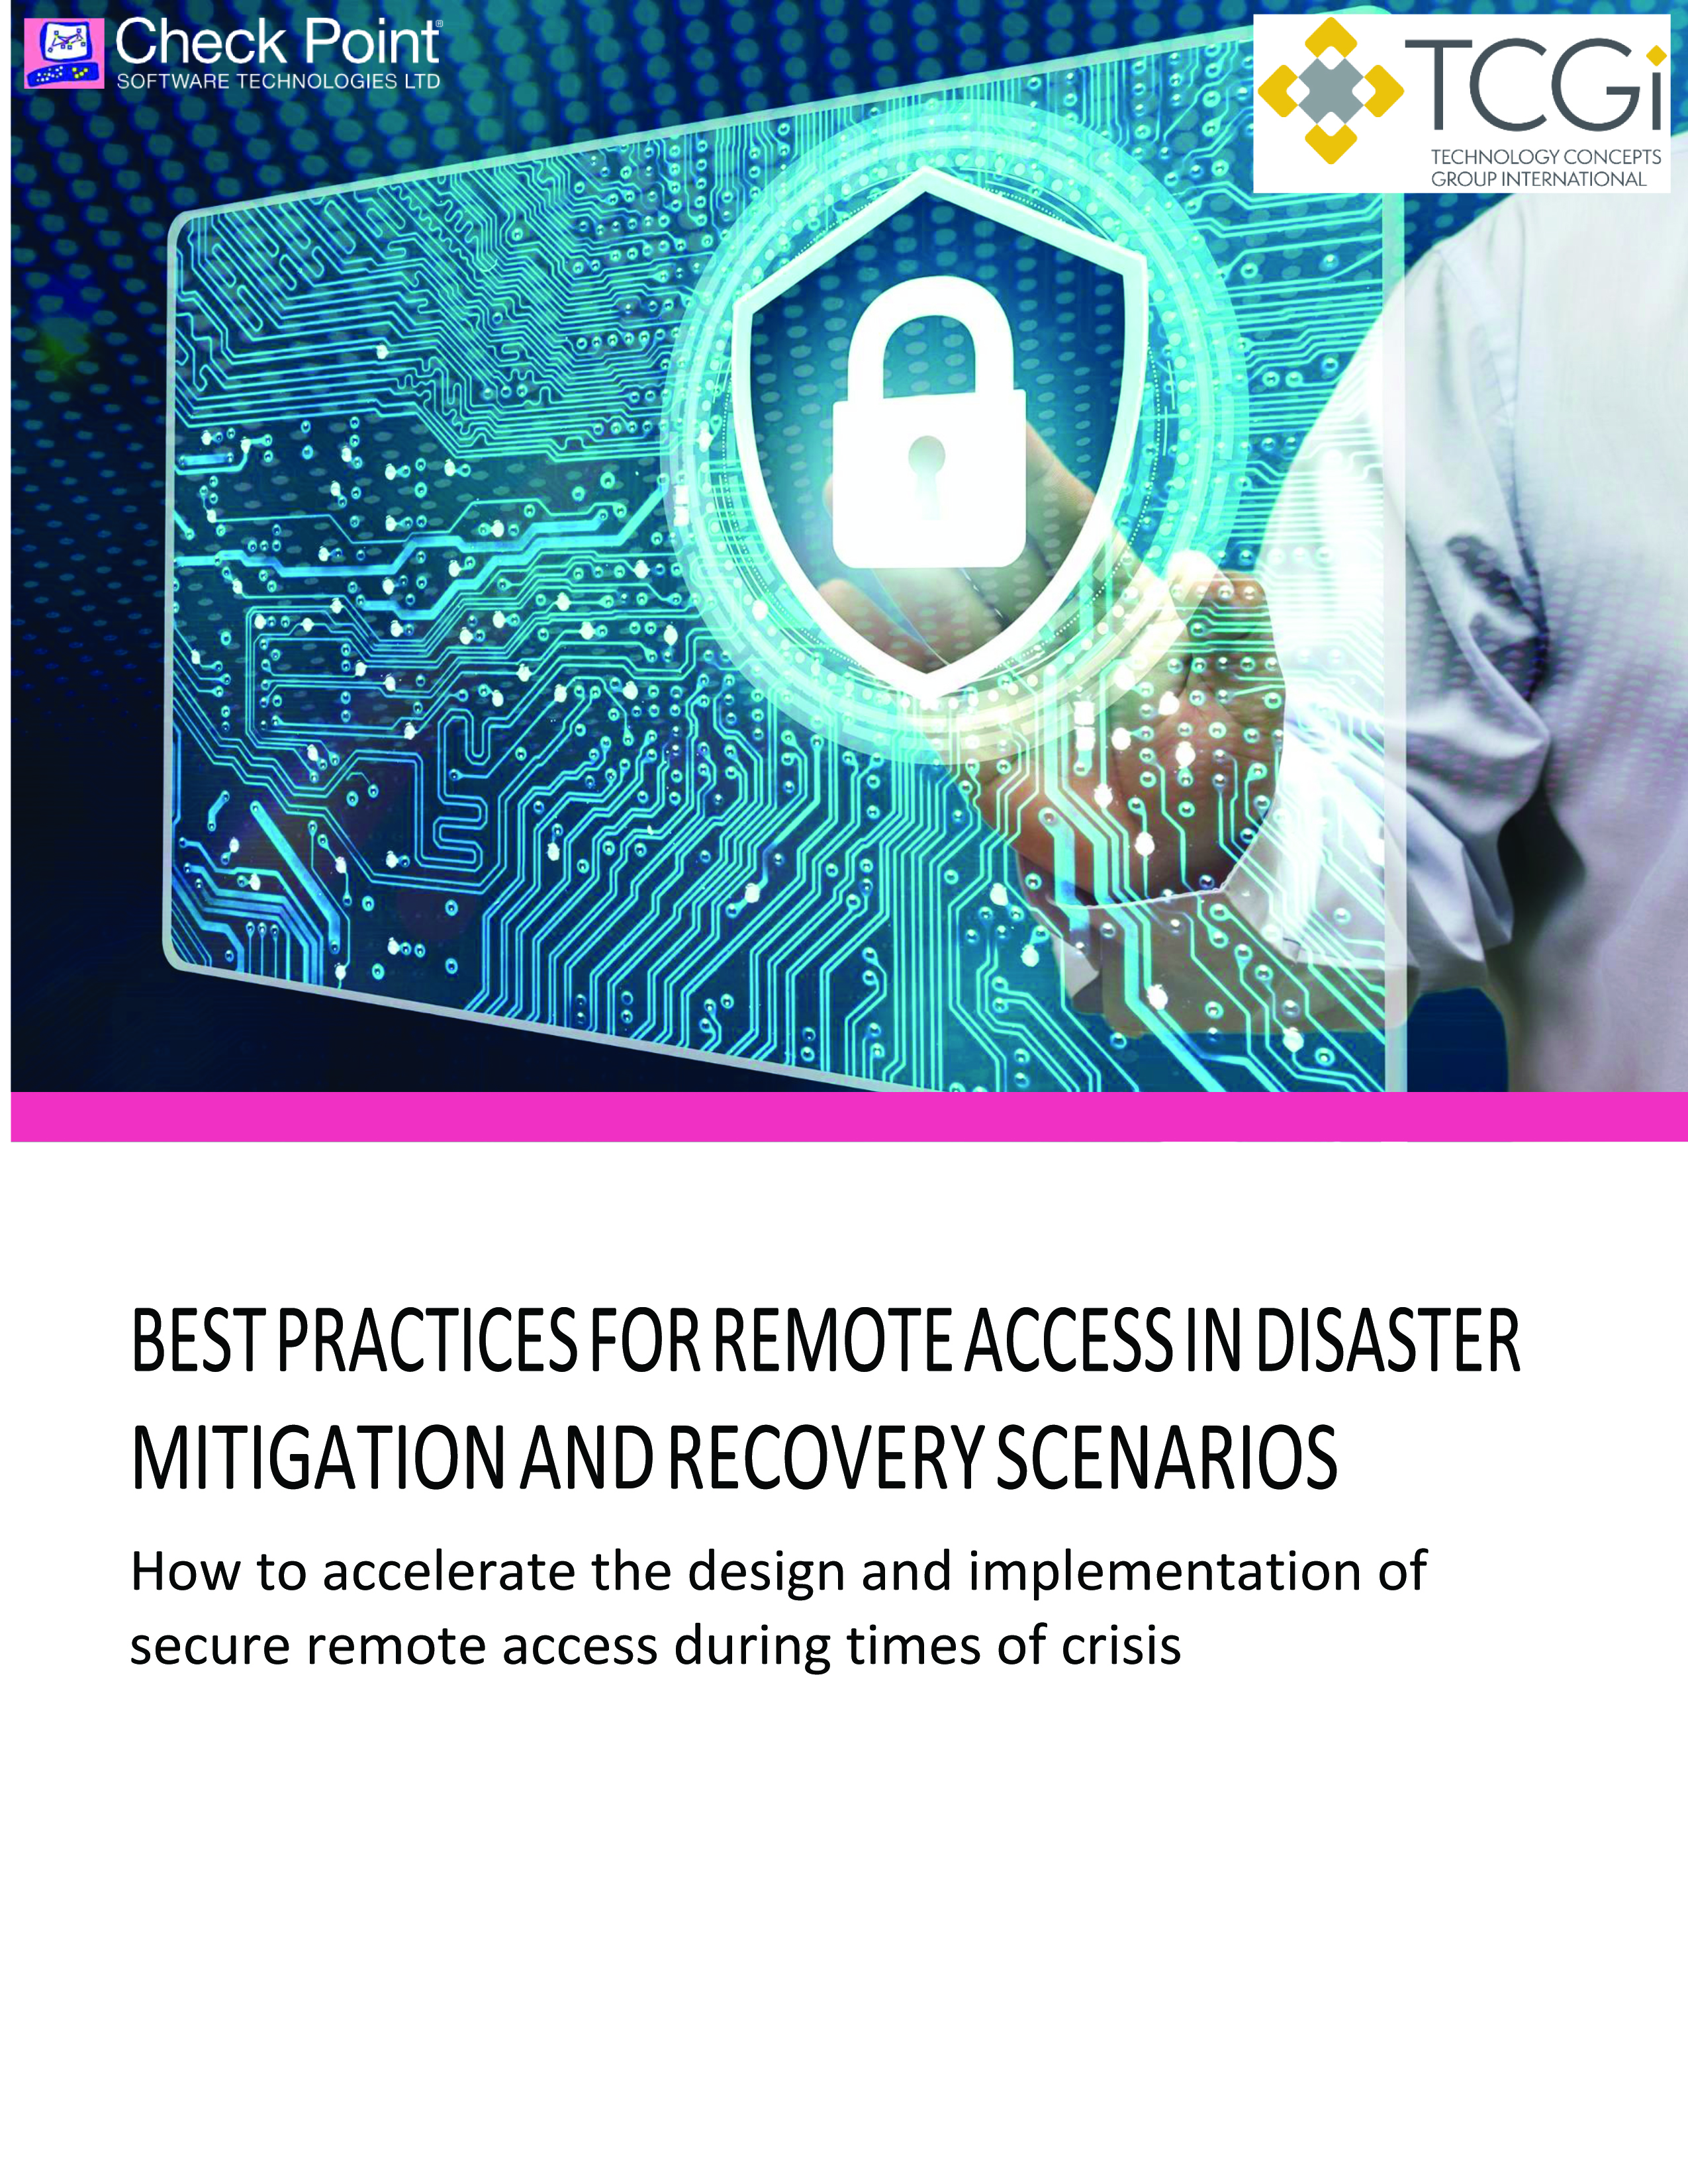 BEST PRACTICES FOR REMOTE ACCESS